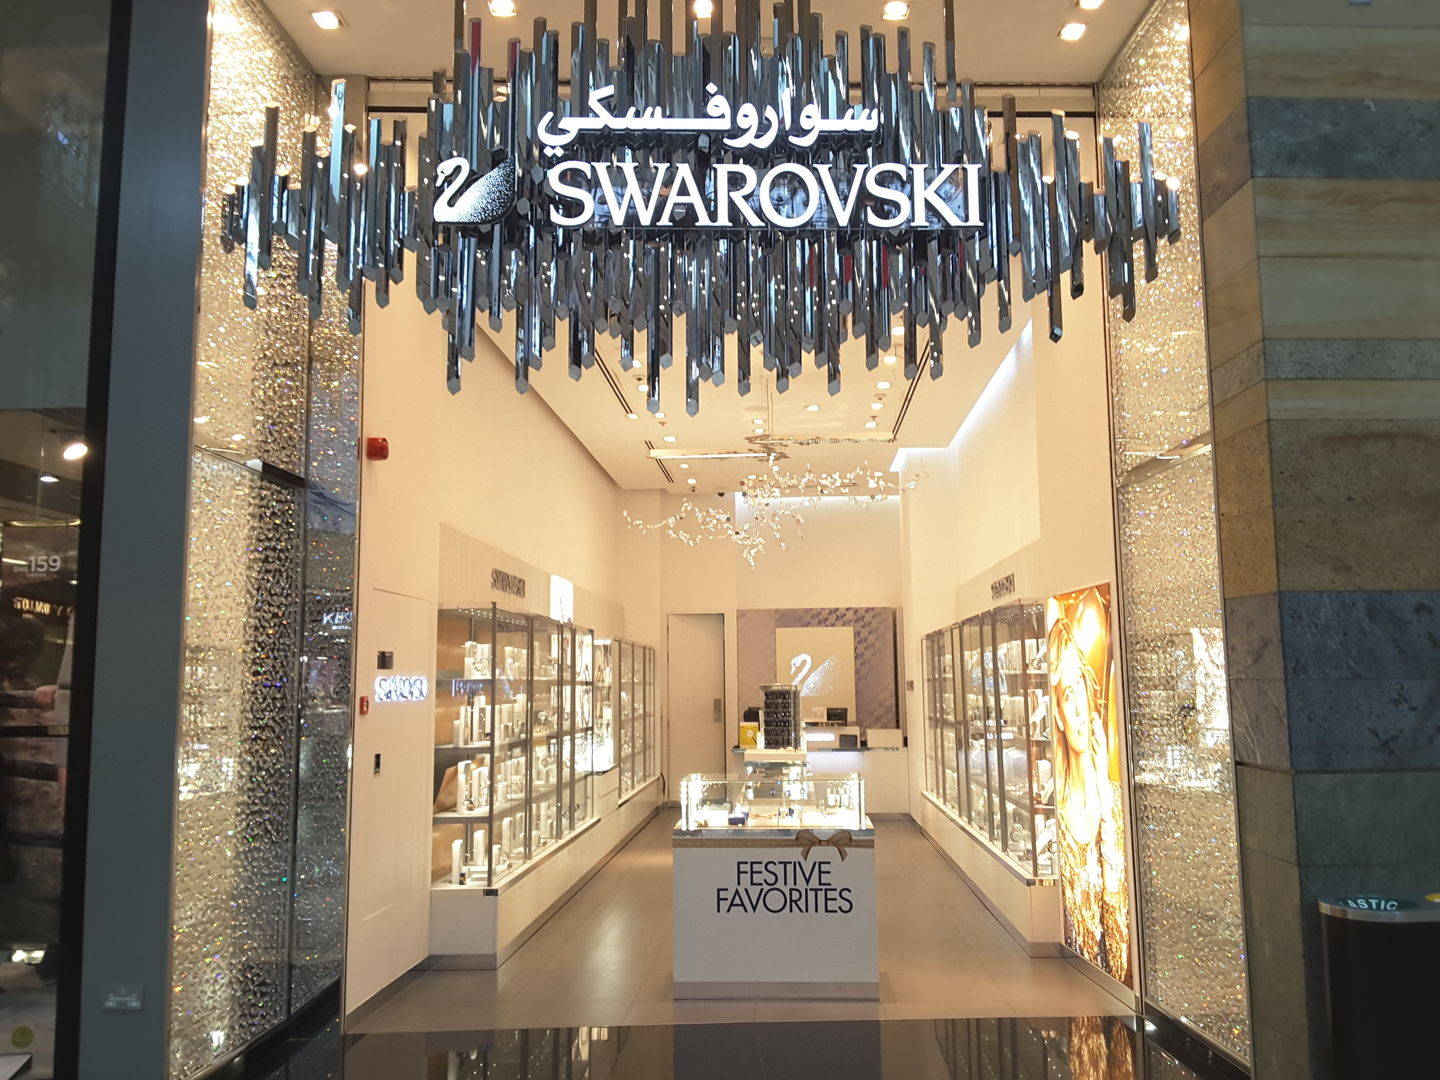 Walif-business-swarovski-1